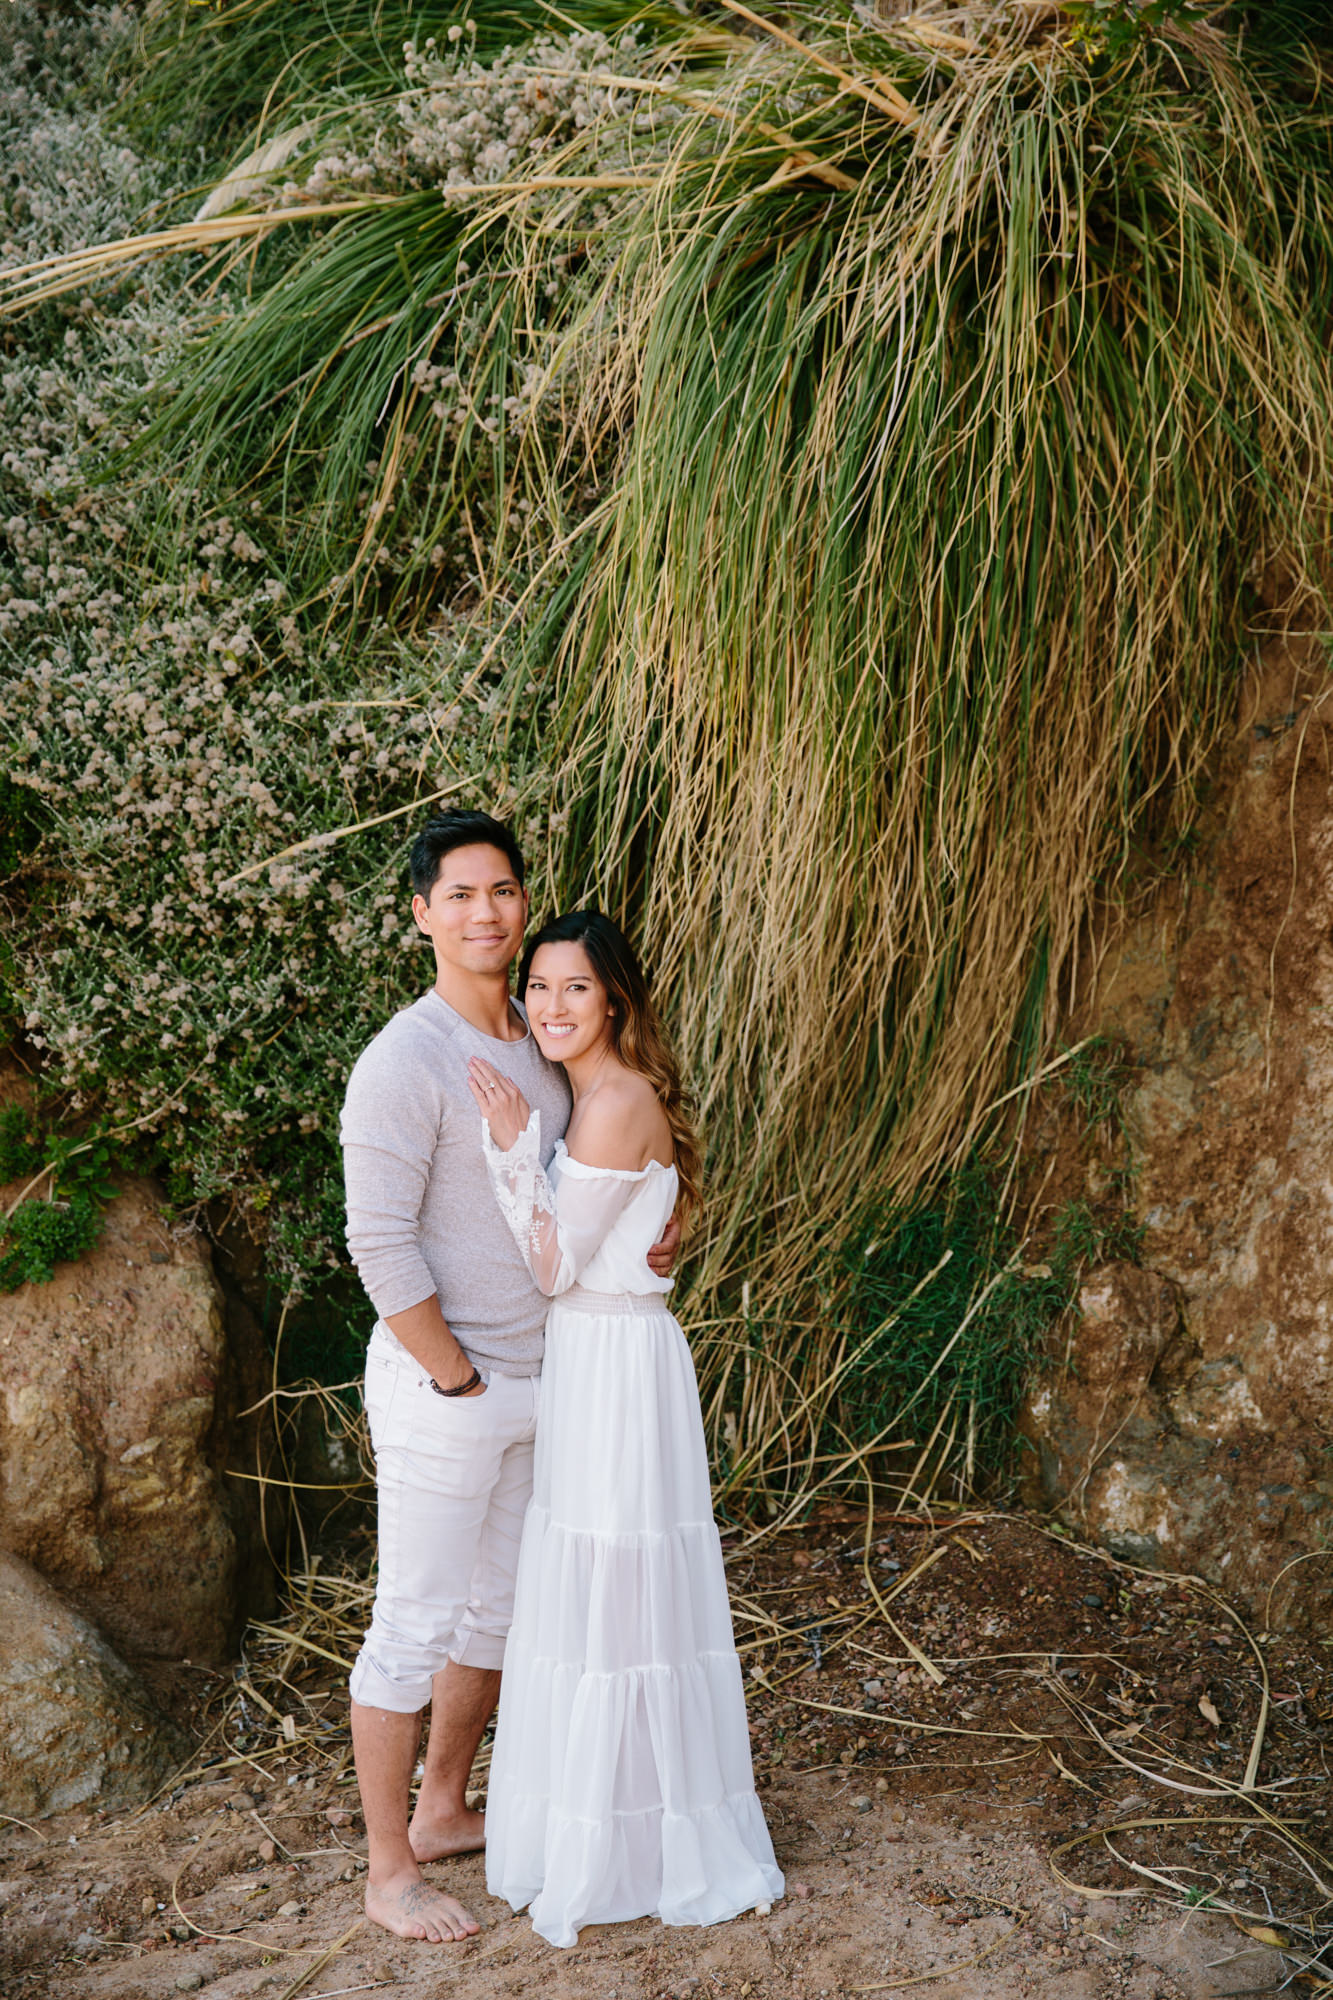 Abe and Stephanie by Jenna Pangan-66.jpg